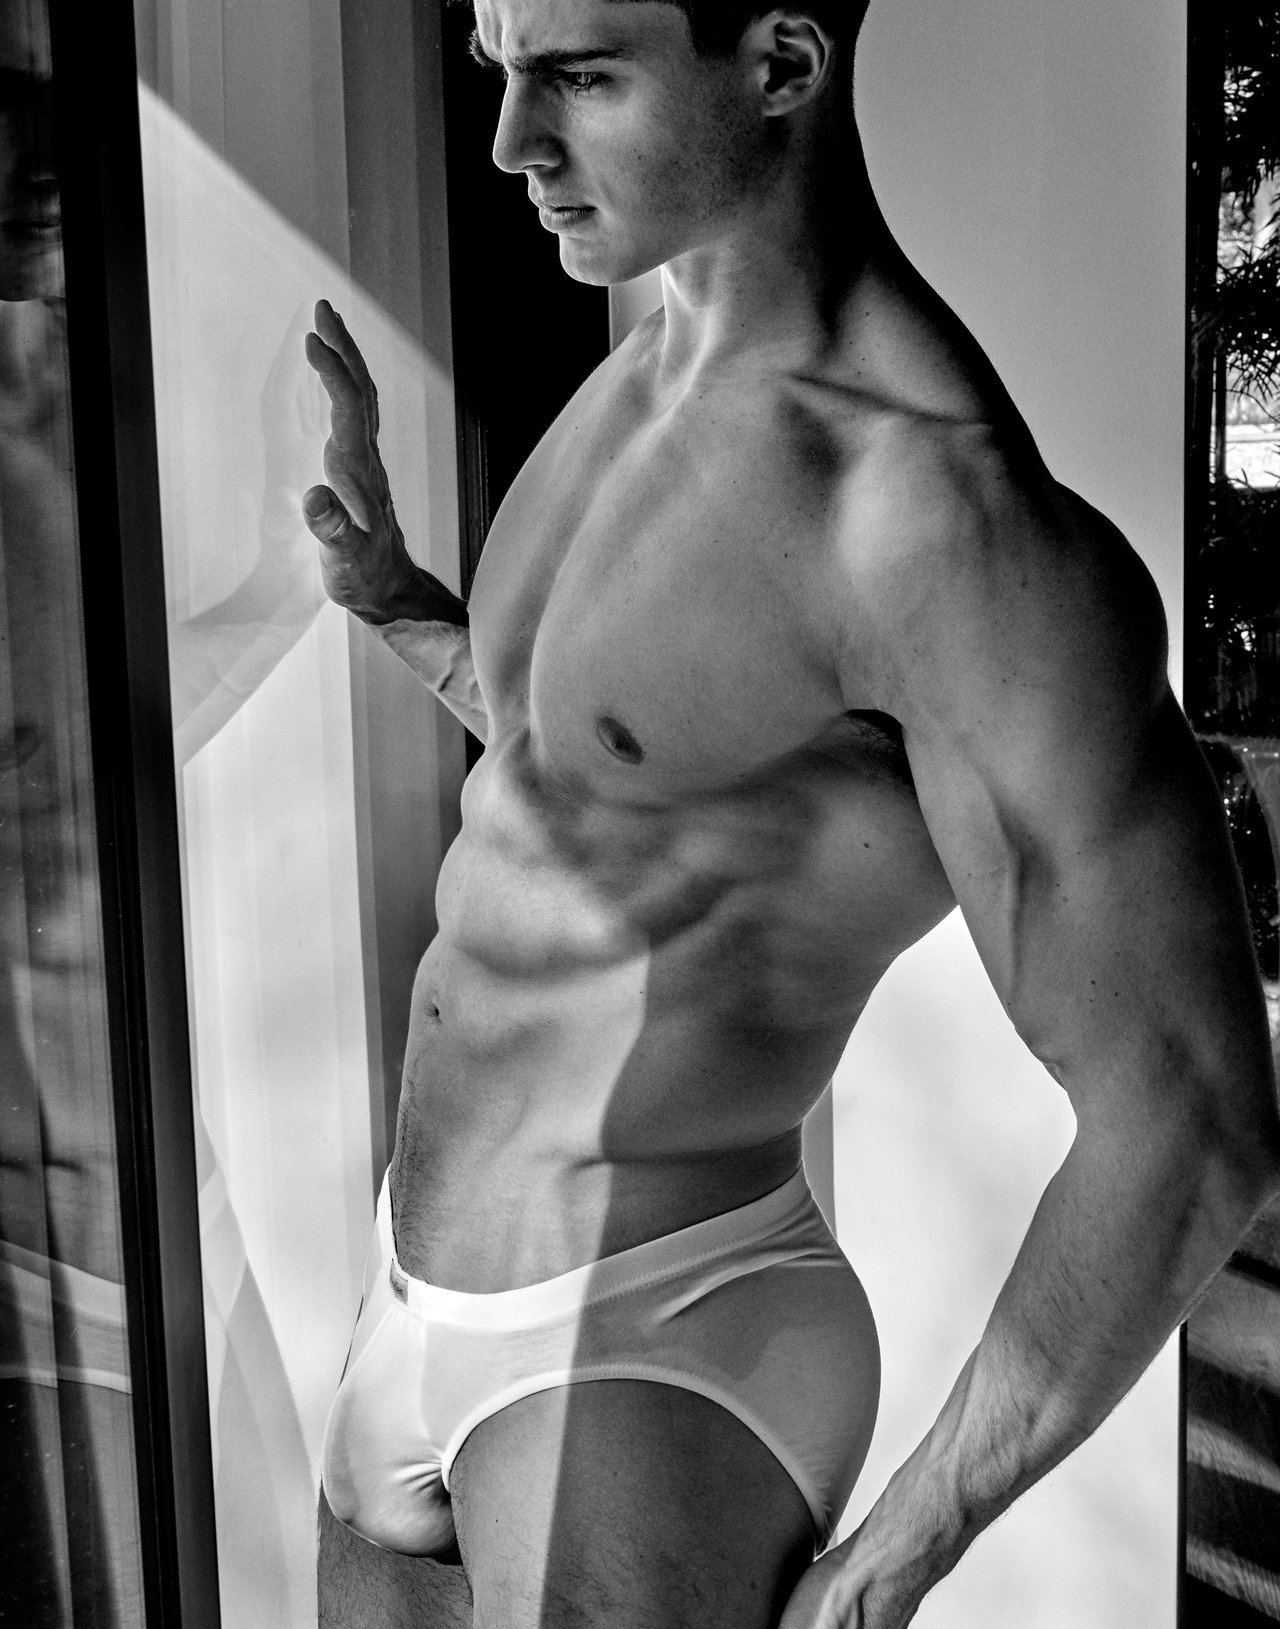 Omg New Revealing Photoshoot Surfaces With Pietro Boselli In